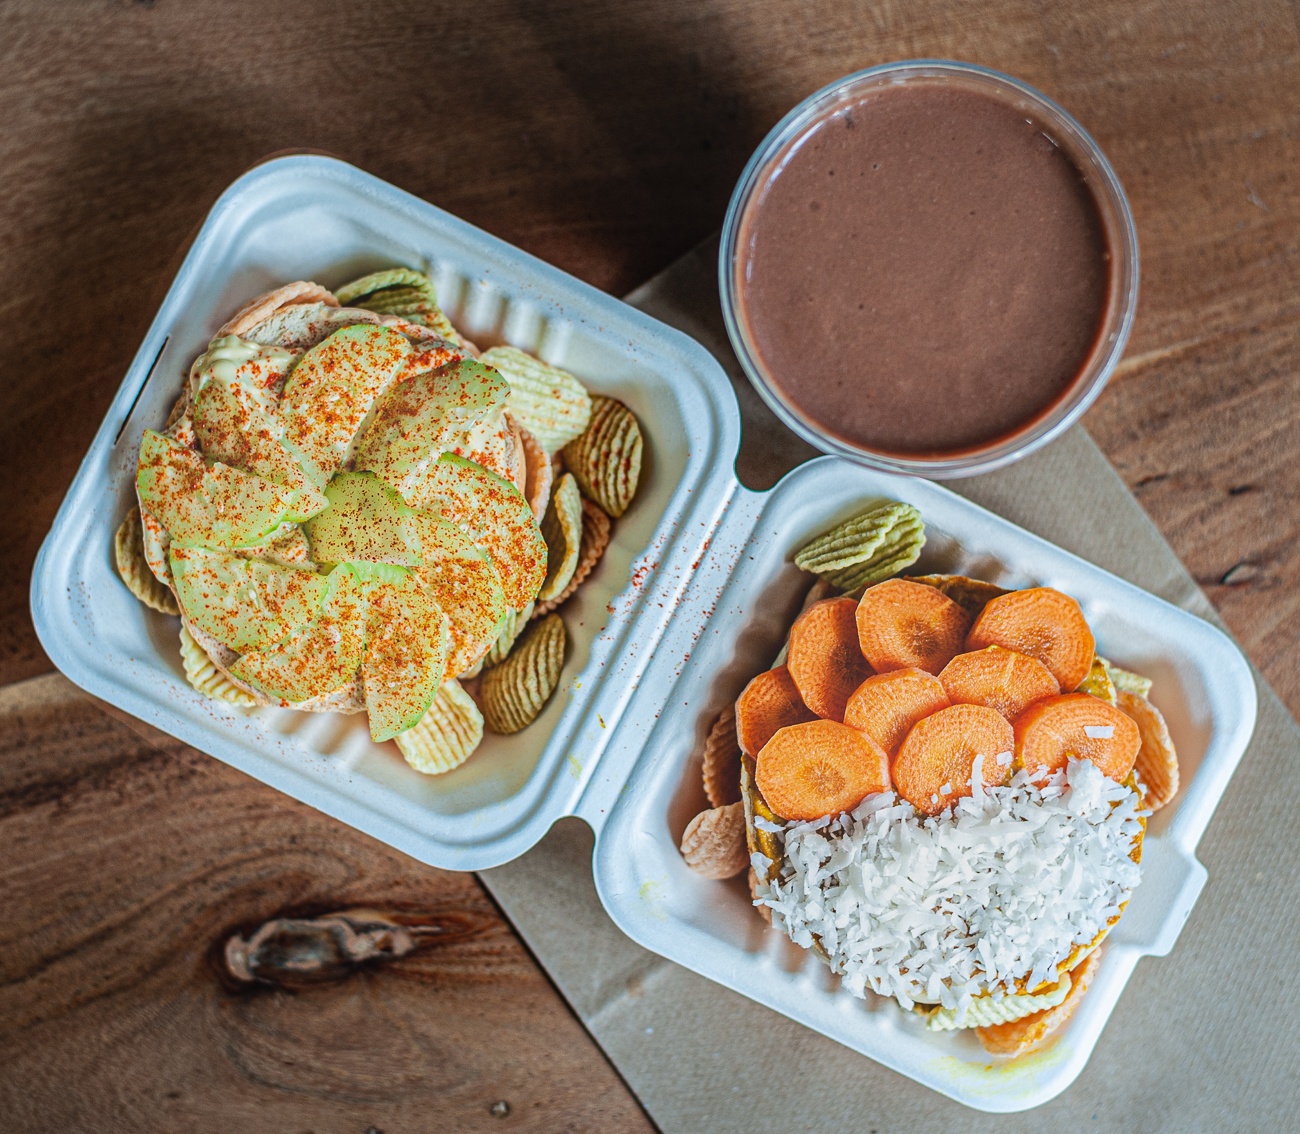 Curry Coconut Baglette (half bagel or gluten free English muffin with house vegan curry spread and topped with shredded coconut with veggie chips on the side) and Curry Carrot Baglette (half bagel or a gluten free English muffin with house vegan curry spread, topped with carrot with veggie chips on the side) / Image: Kellie Coleman // Published: 12.27.20